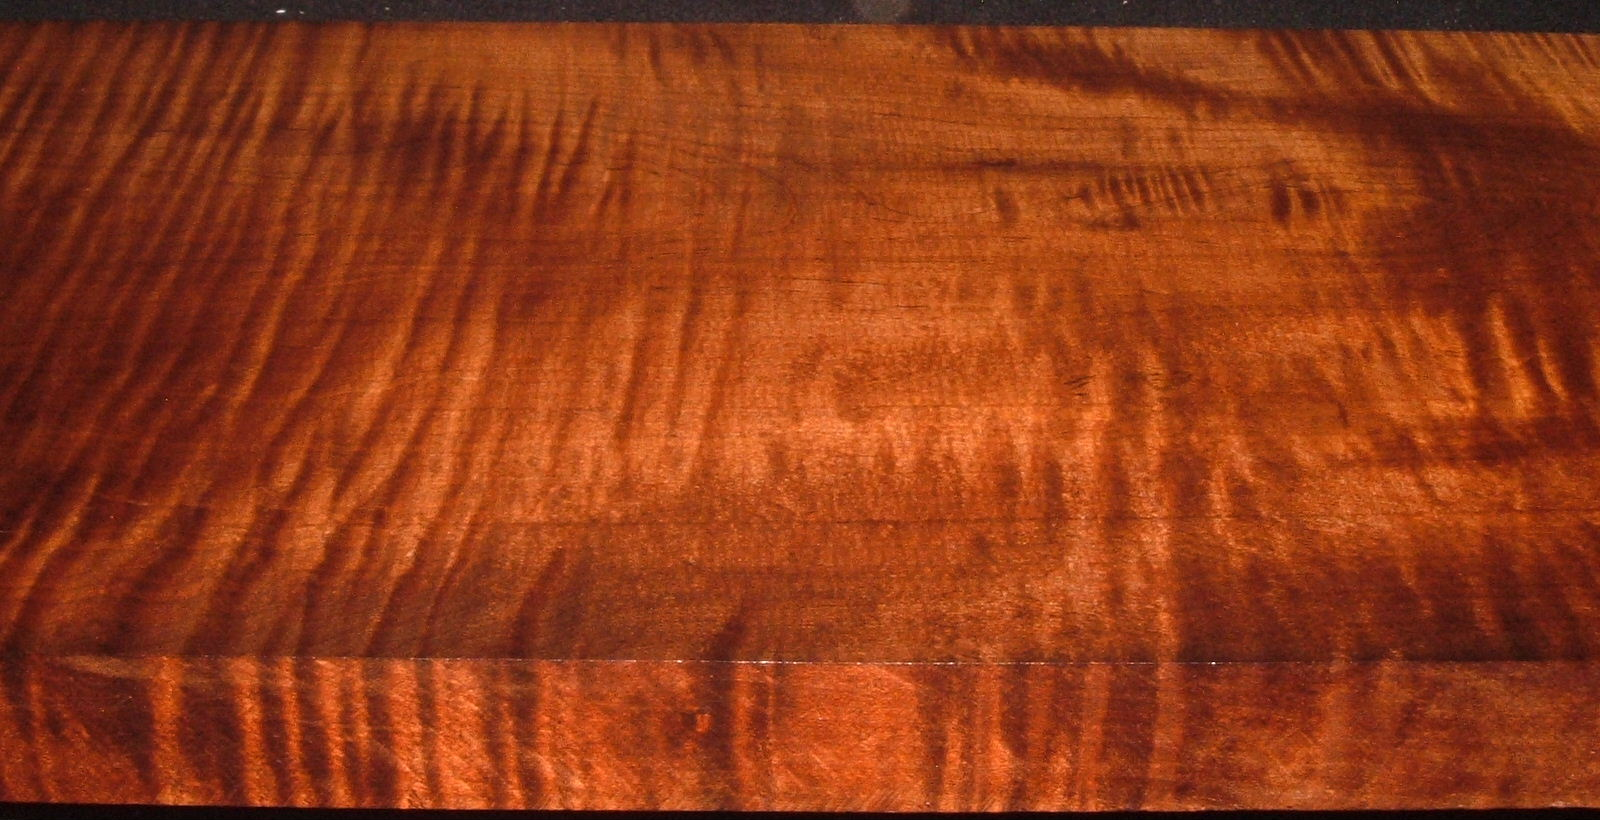 RM2006-195, +1-1/2x12-1/2x47+, Roasted Curly Maple